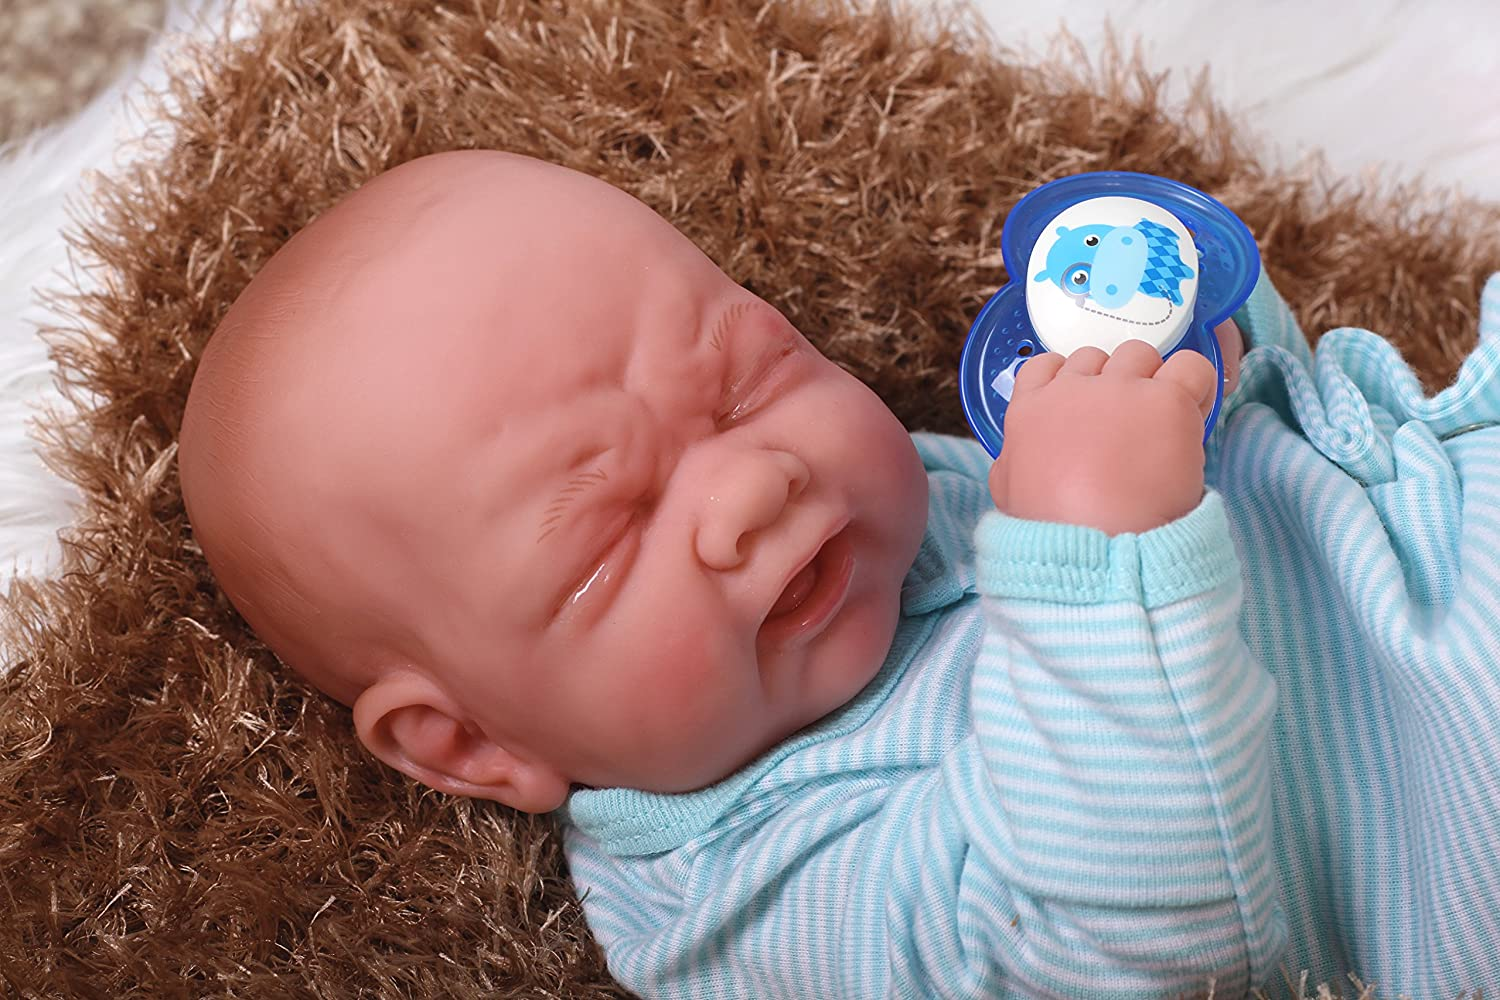 """Cute Baby Crying boy Realistic Looking Anatomically Correct Preemie Berenguer Newborn Reborn 14\"""" Inches Alive Doll Accessories Fully Washable 91lNc0awkJLSL1500_"""